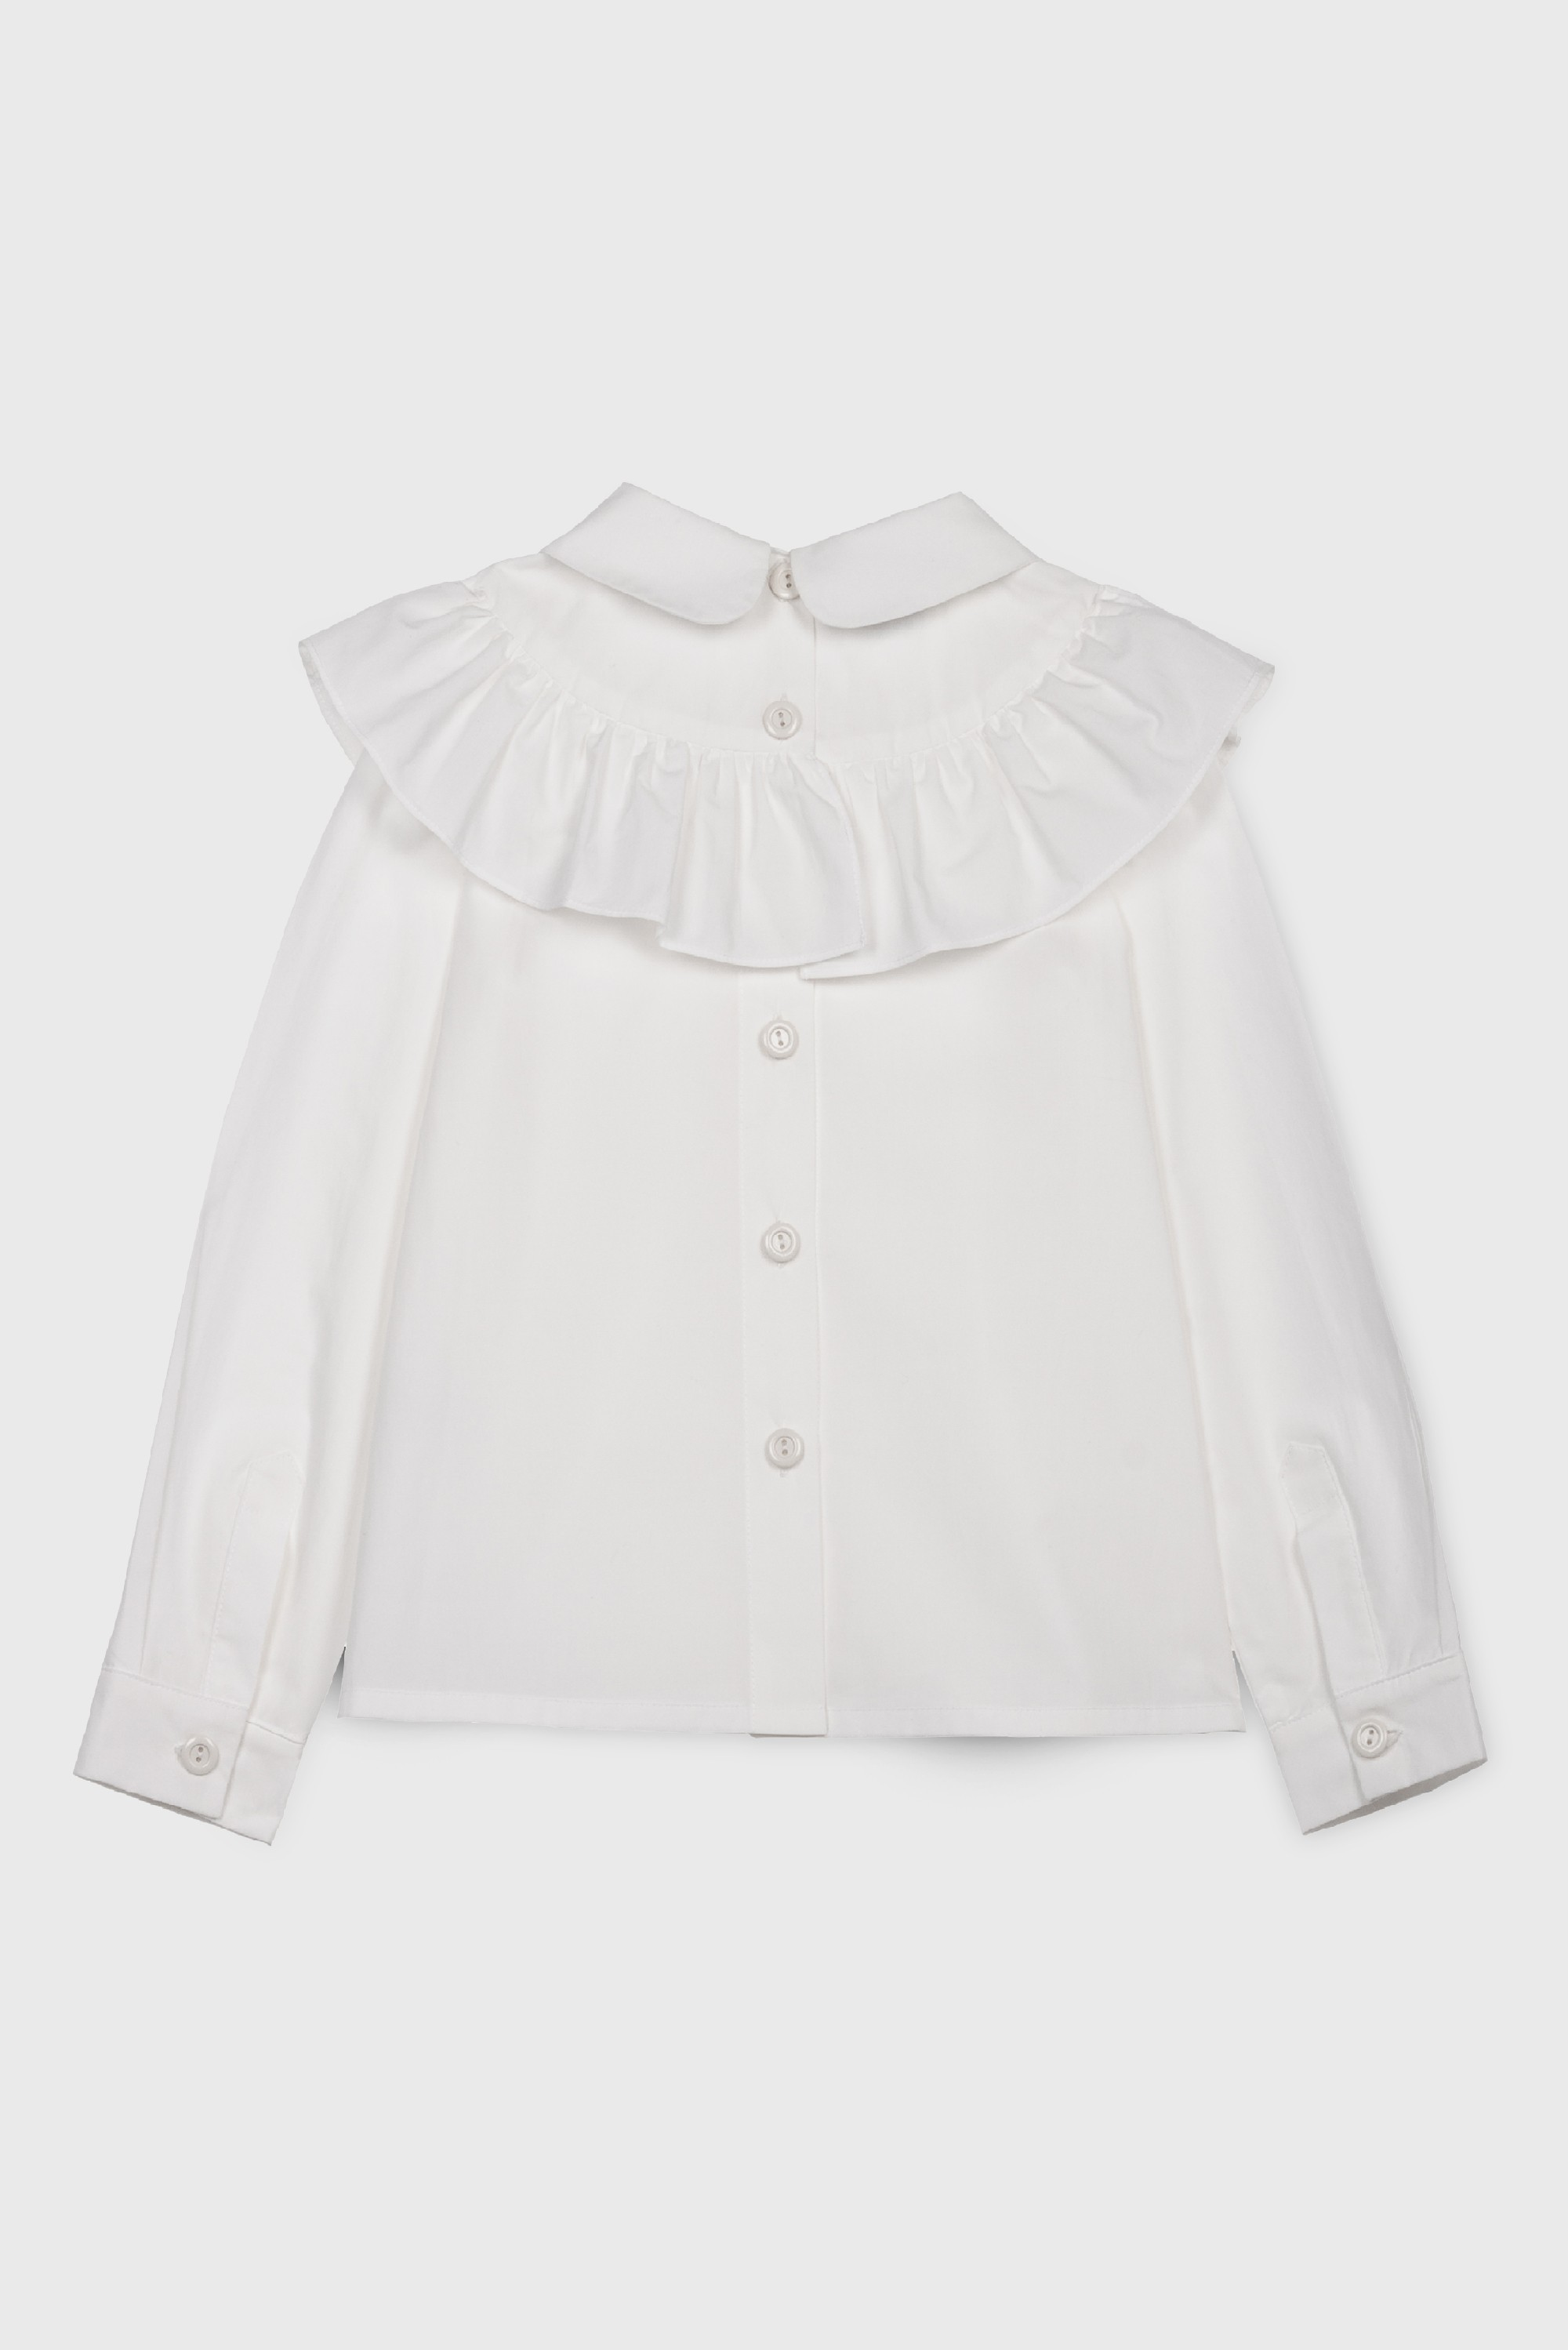 WHITE RUFFLE COLLARED BLOUSE